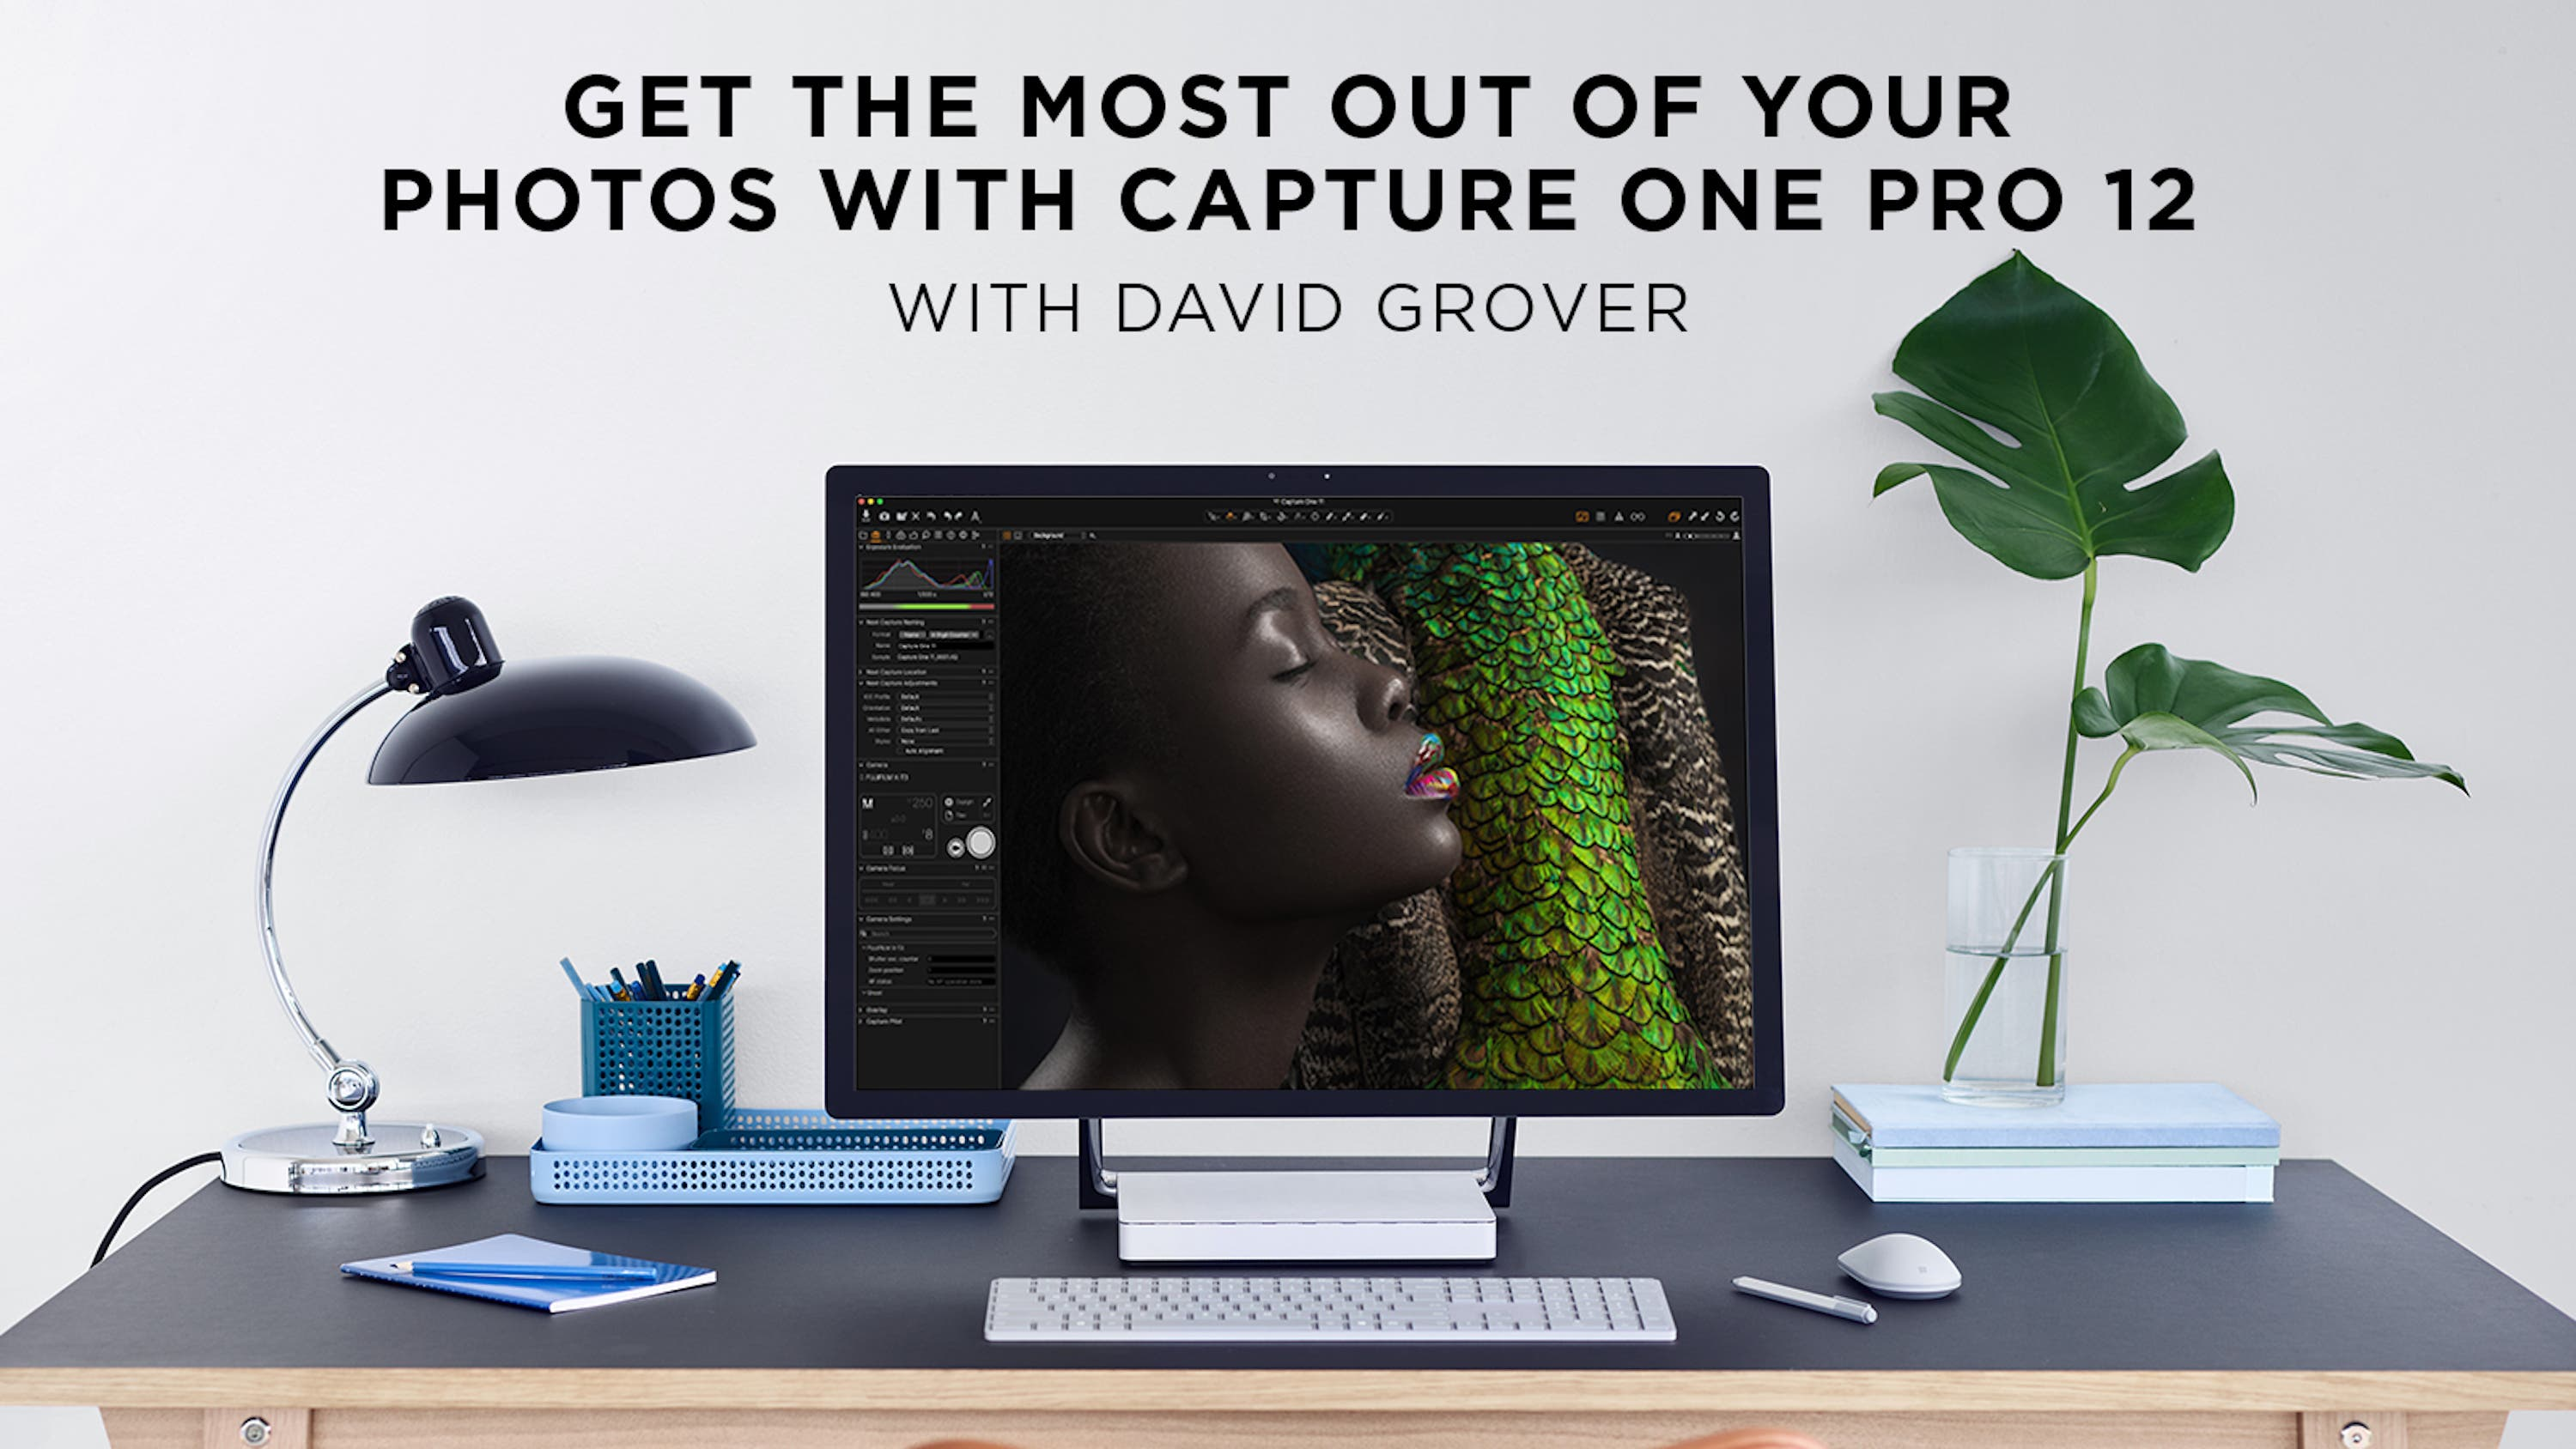 Flash Sale: Save up to 75% on Complete LR, PS, Capture One Guides